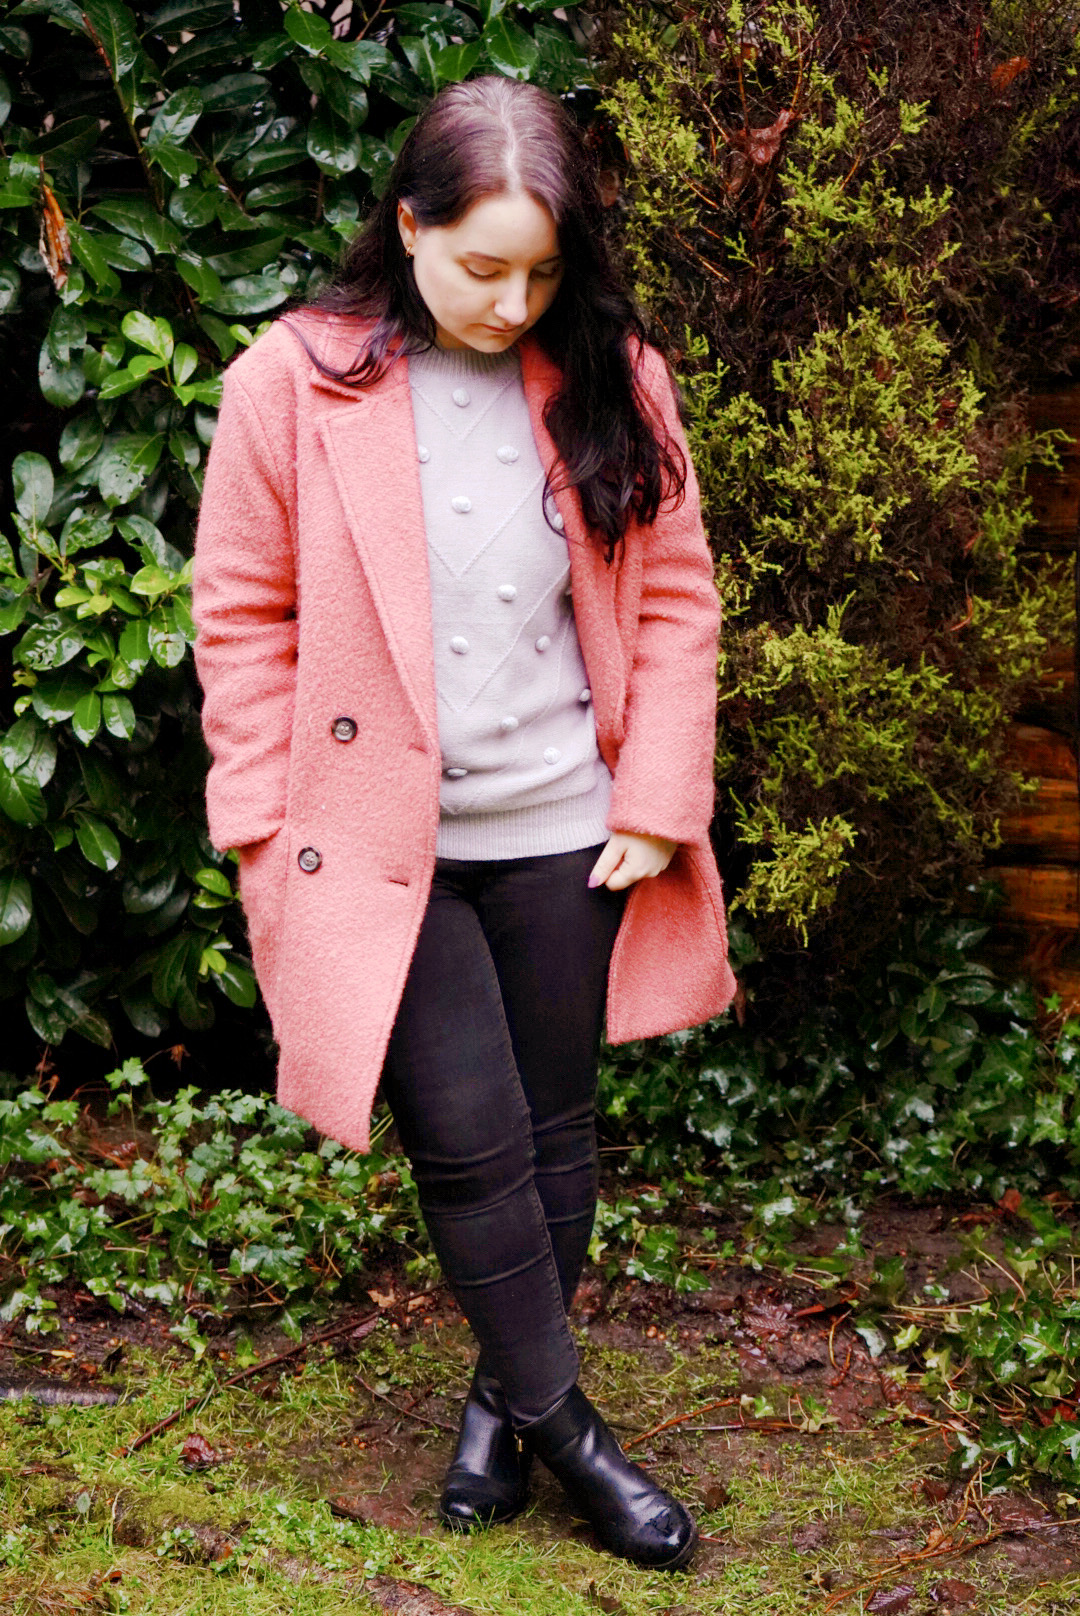 Favourite Winter Outfit + Tips